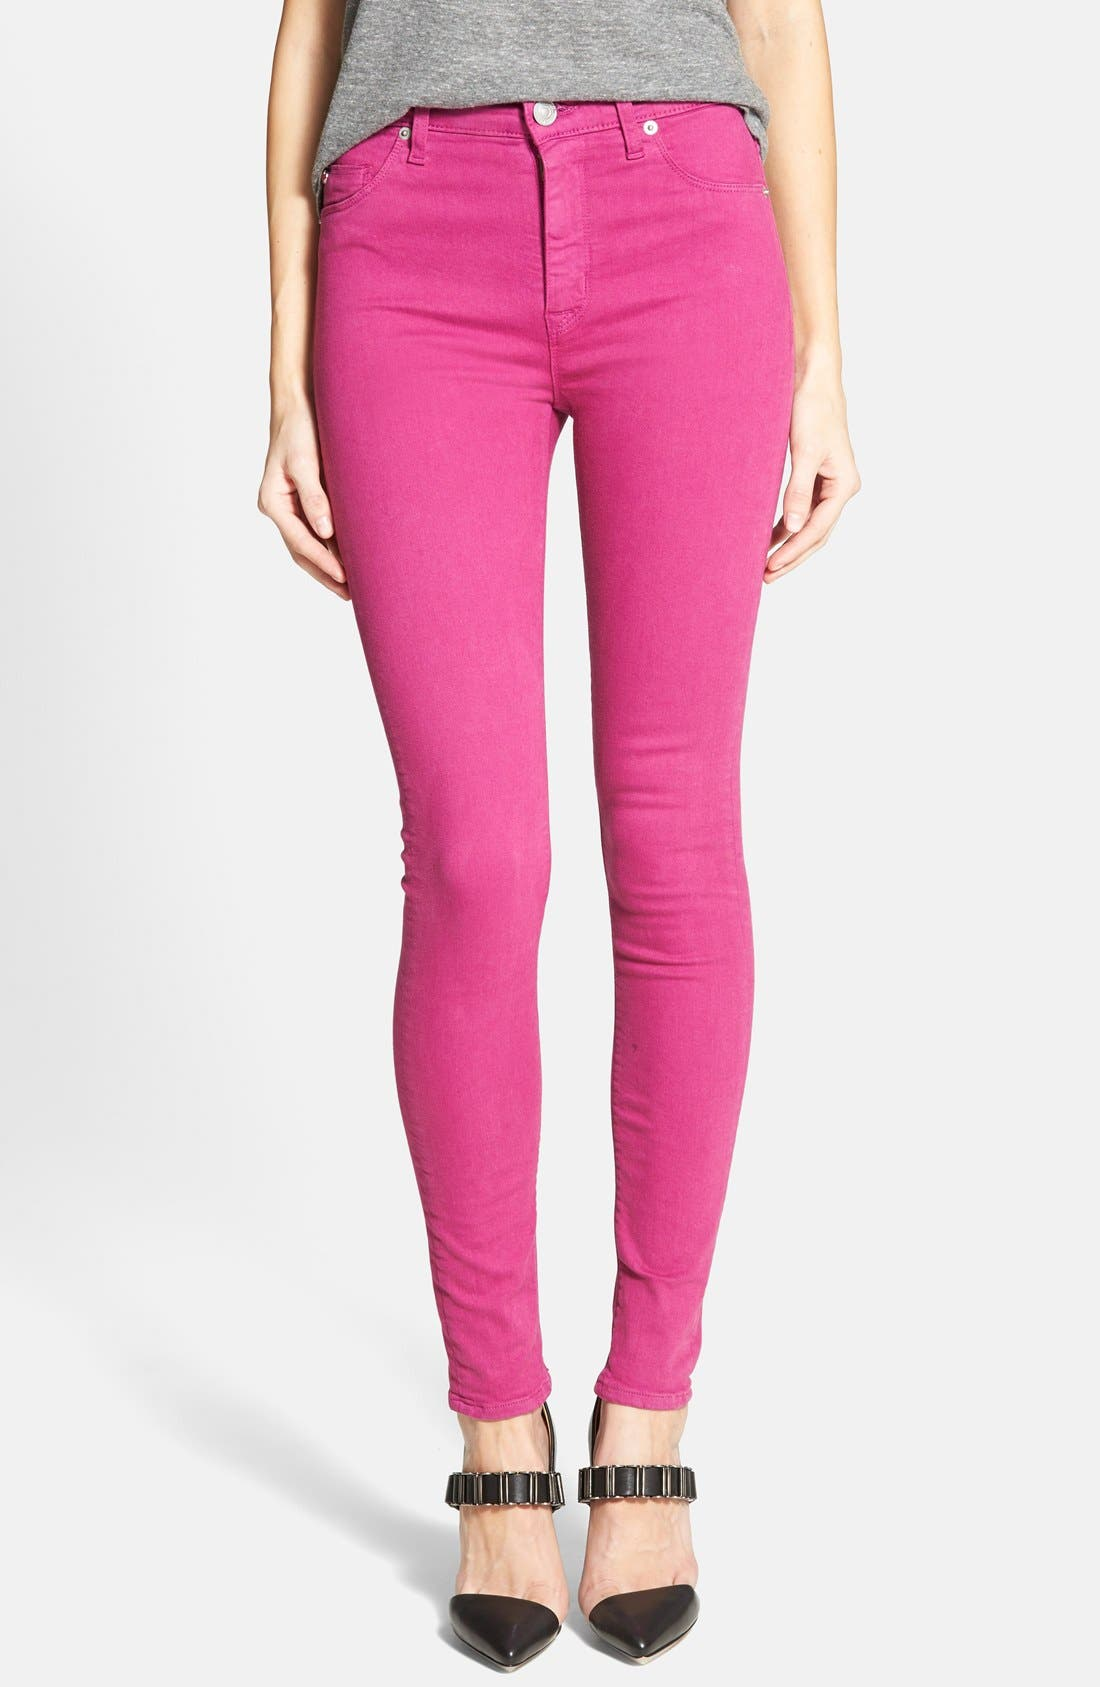 Main Image - Hudson Jeans 'Krista' Super Skinny Jeans (Bright Hydrangea)